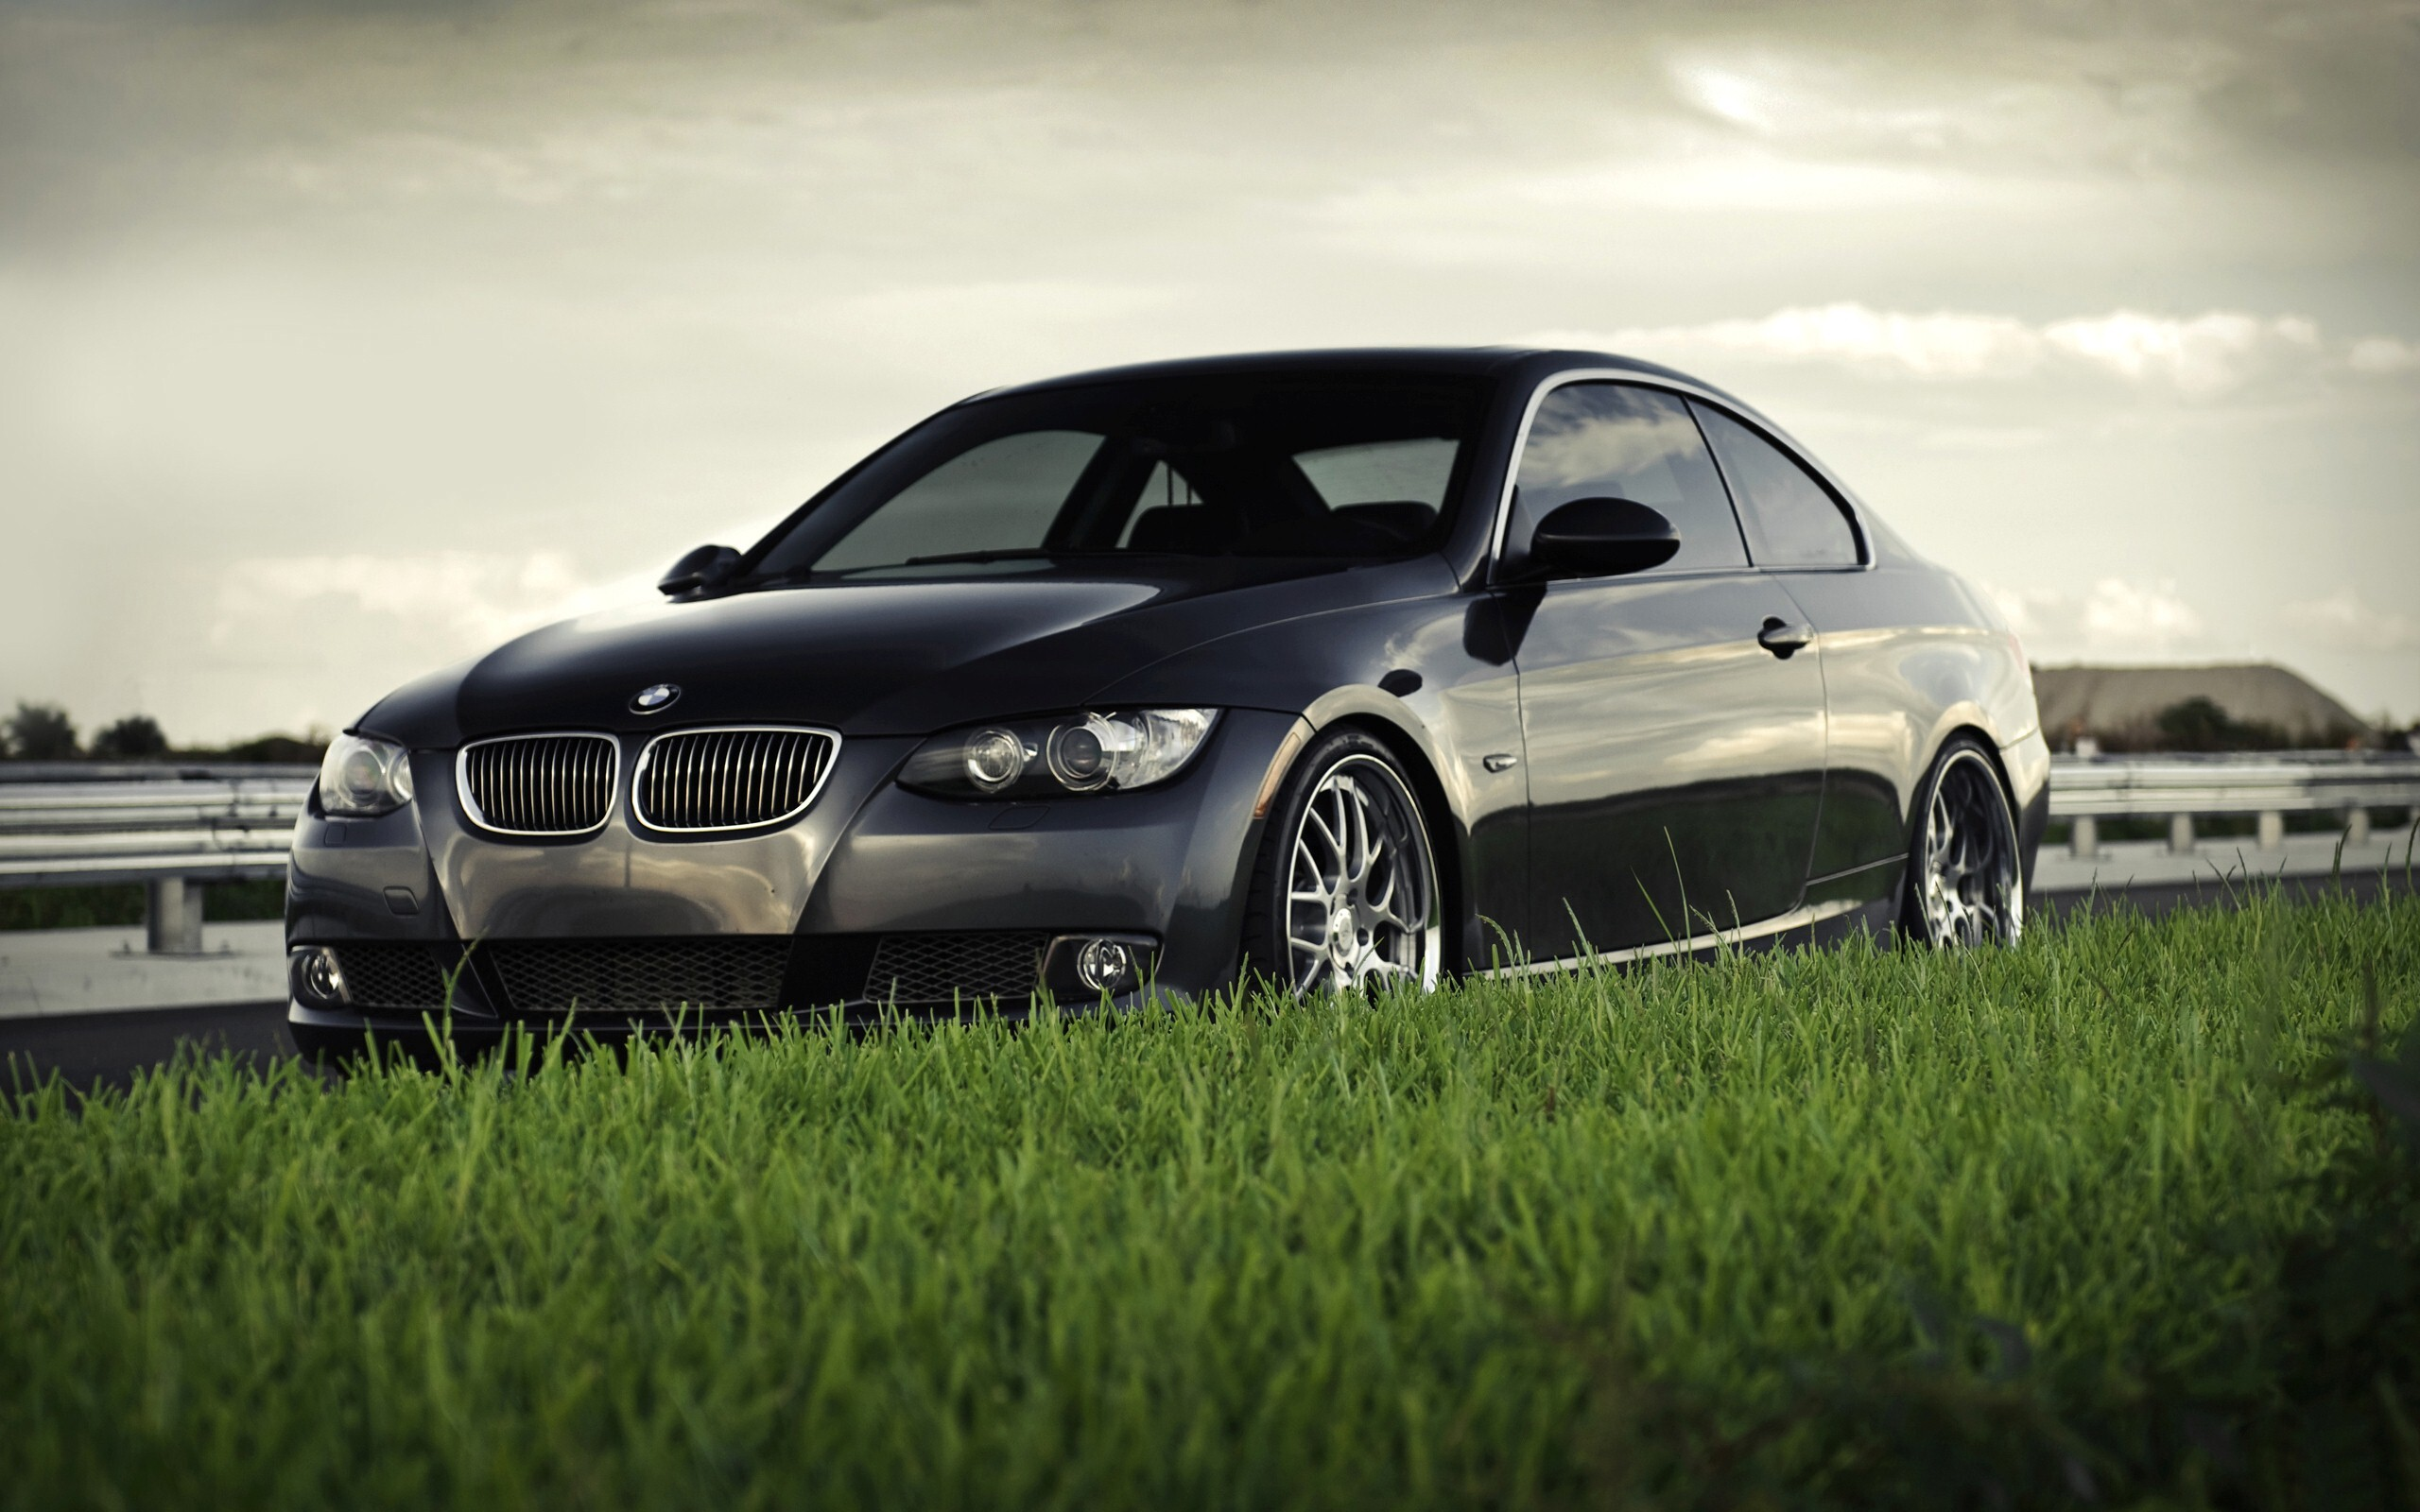 Black Bmw Car Hd Photo Background Hd Wallpapers